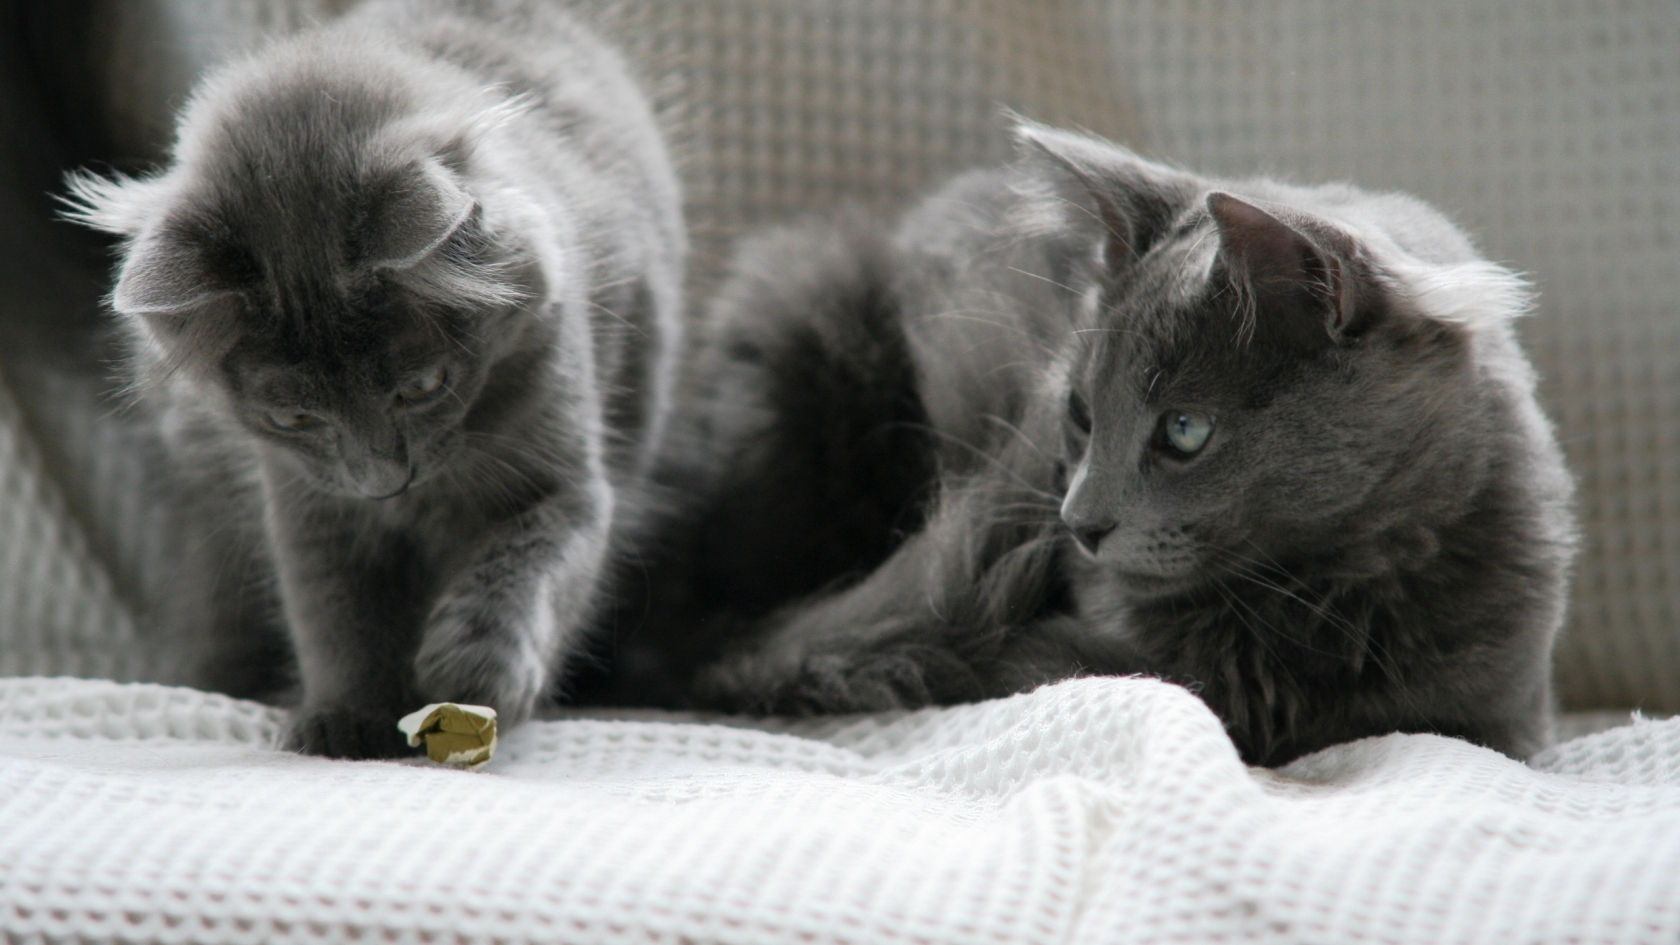 Beautiful Pair of Nebelung Cats for 1680 x 945 HDTV resolution